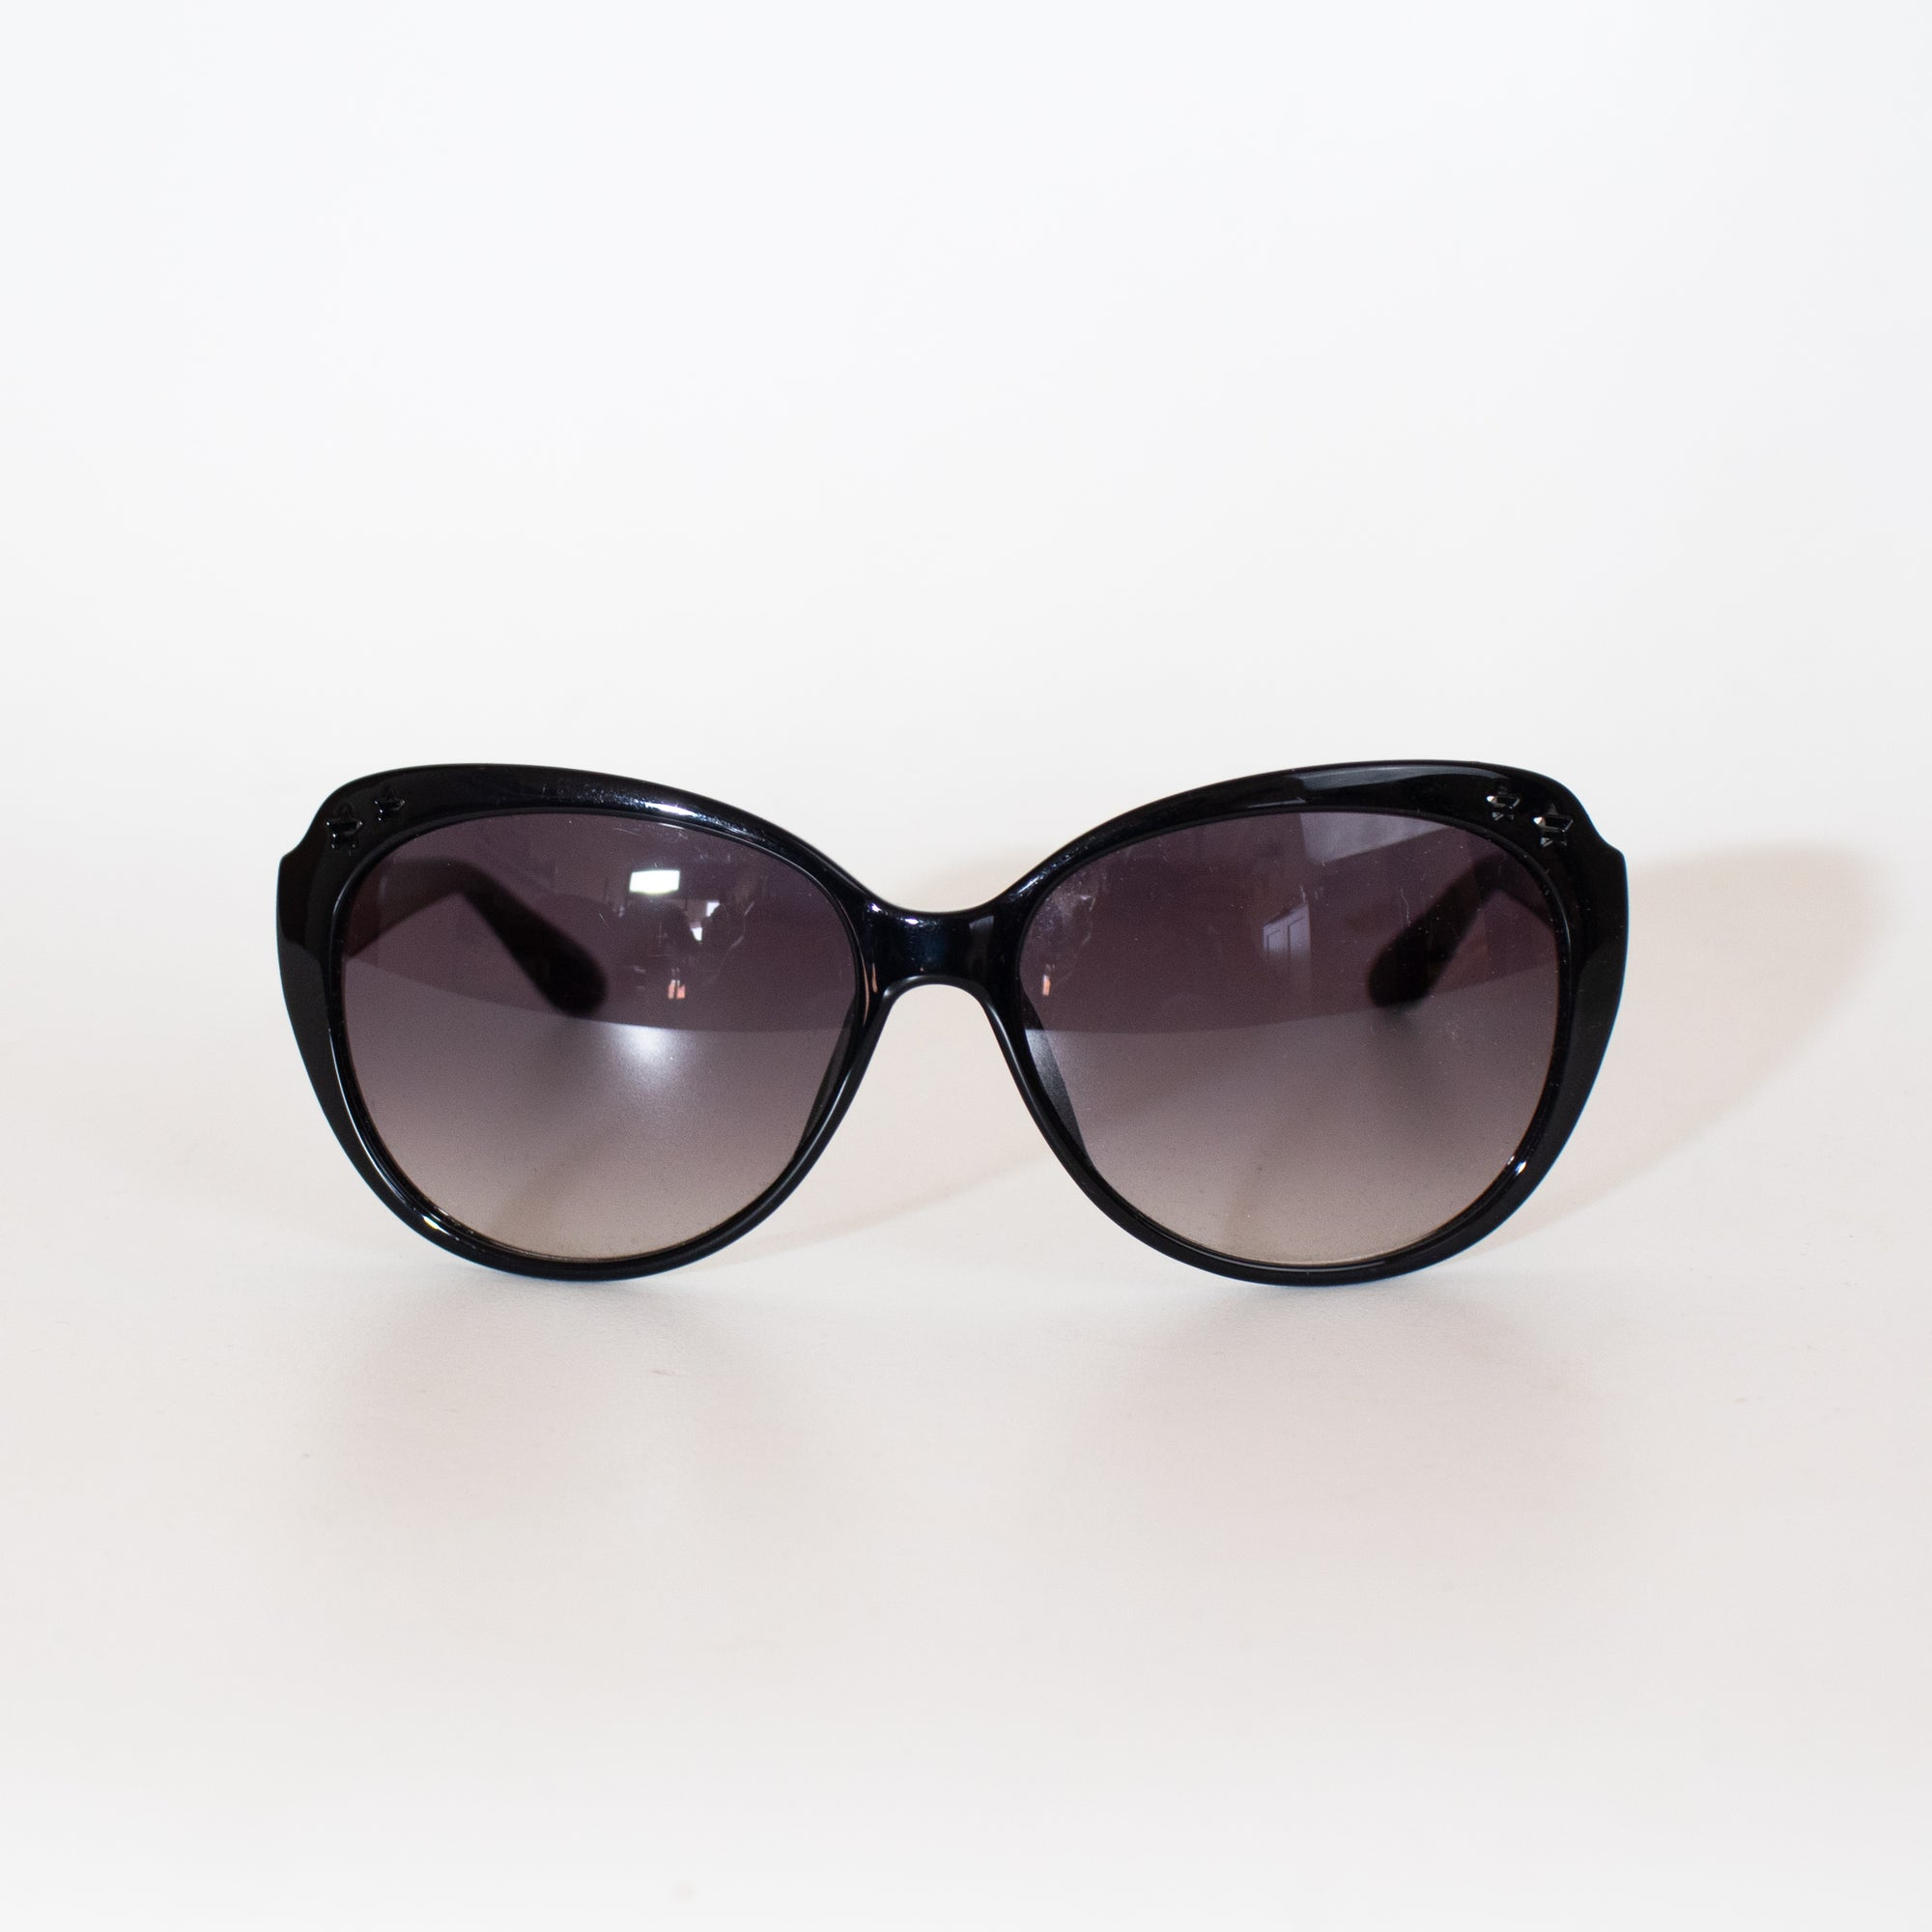 <transcy>Gafas Marc Jacobs</transcy>